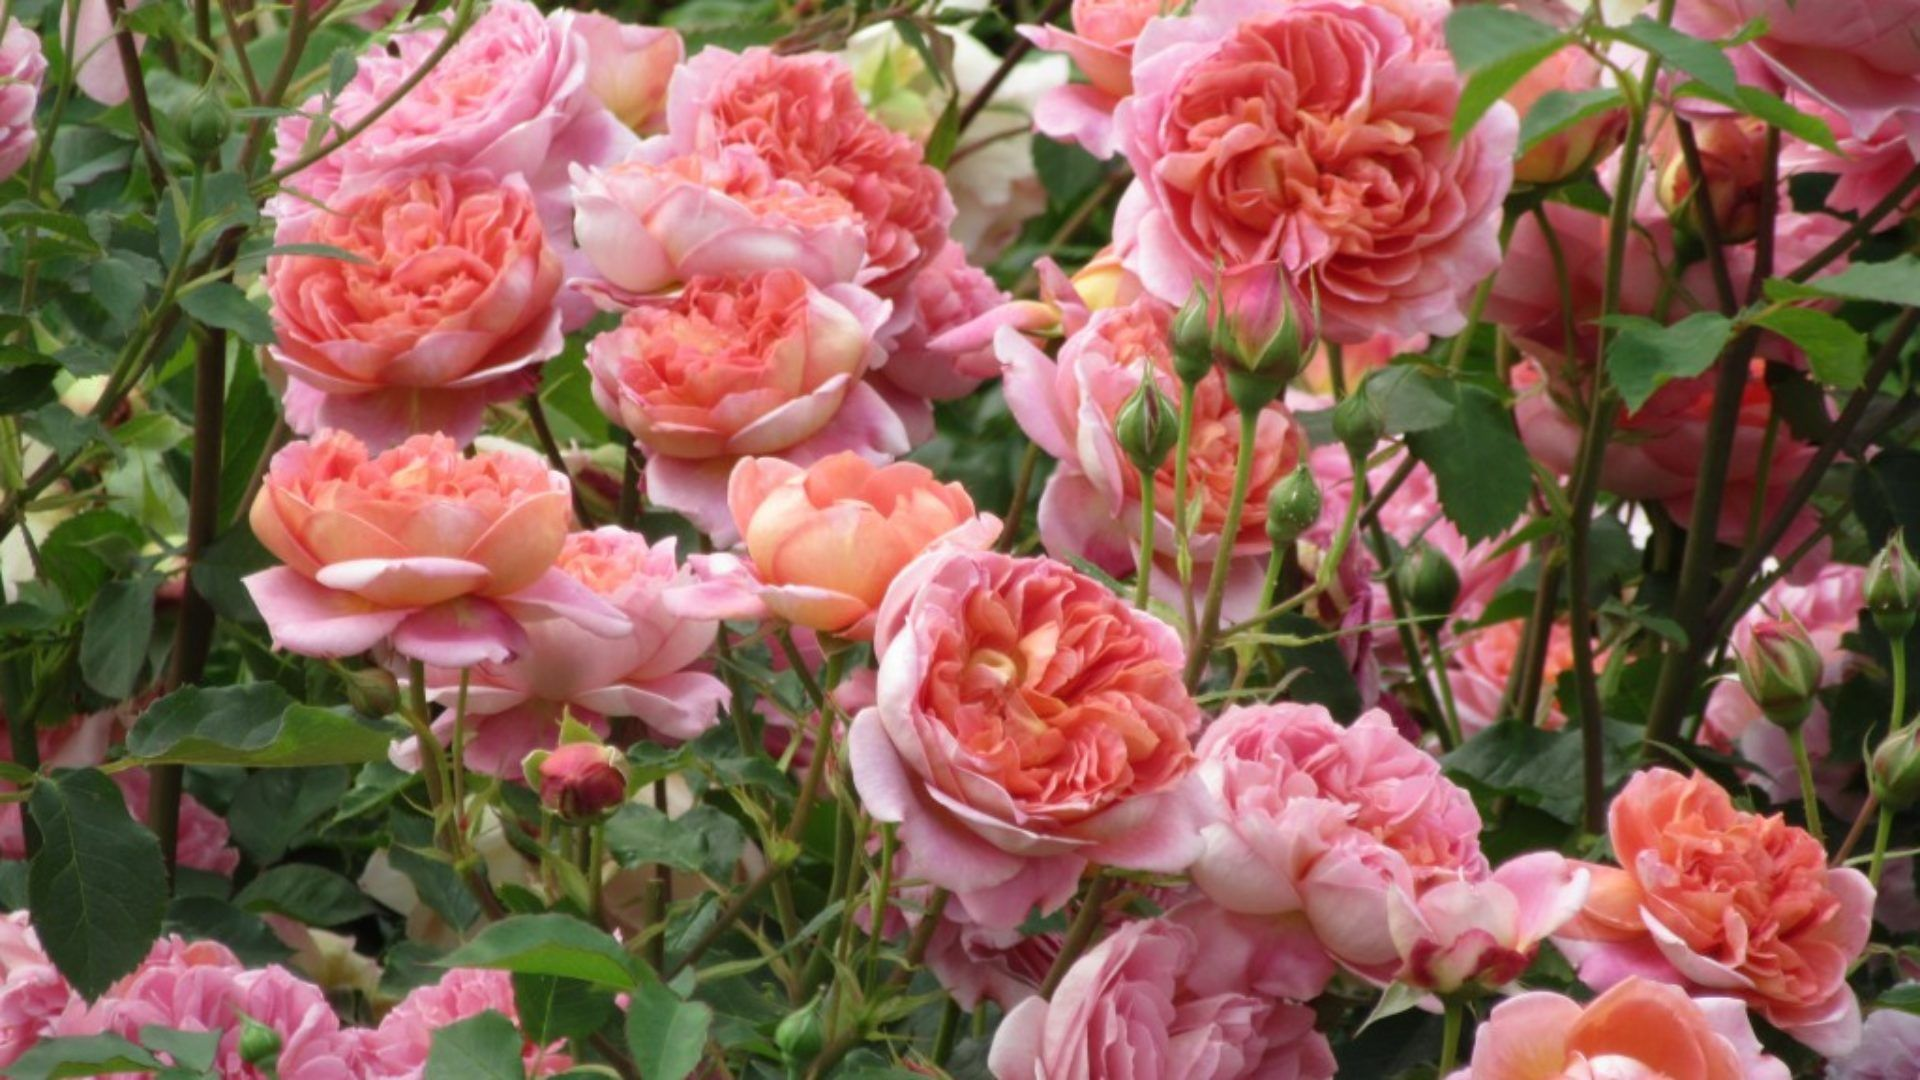 Celebrating Our 15th Anniversay - Our 15 Favourite Roses - Petersham Nurseries